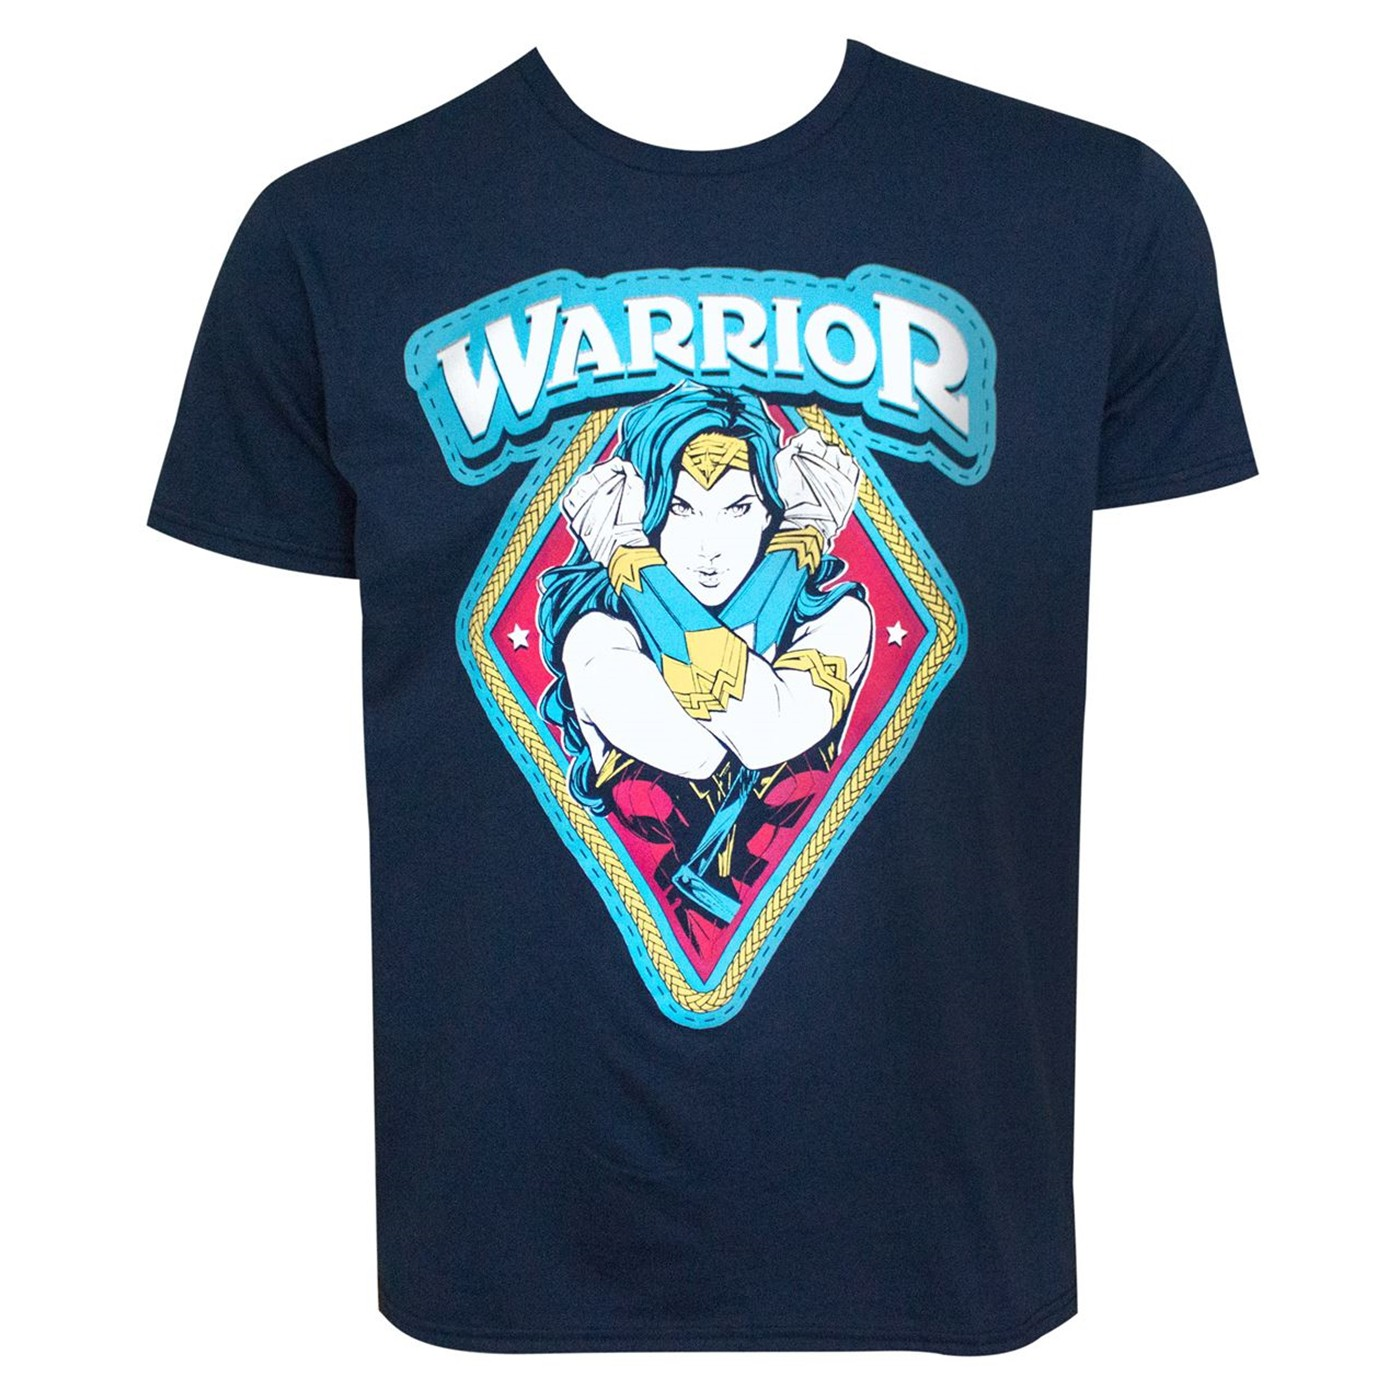 Wonder Woman Warrior NAVY Men's T-Shirt